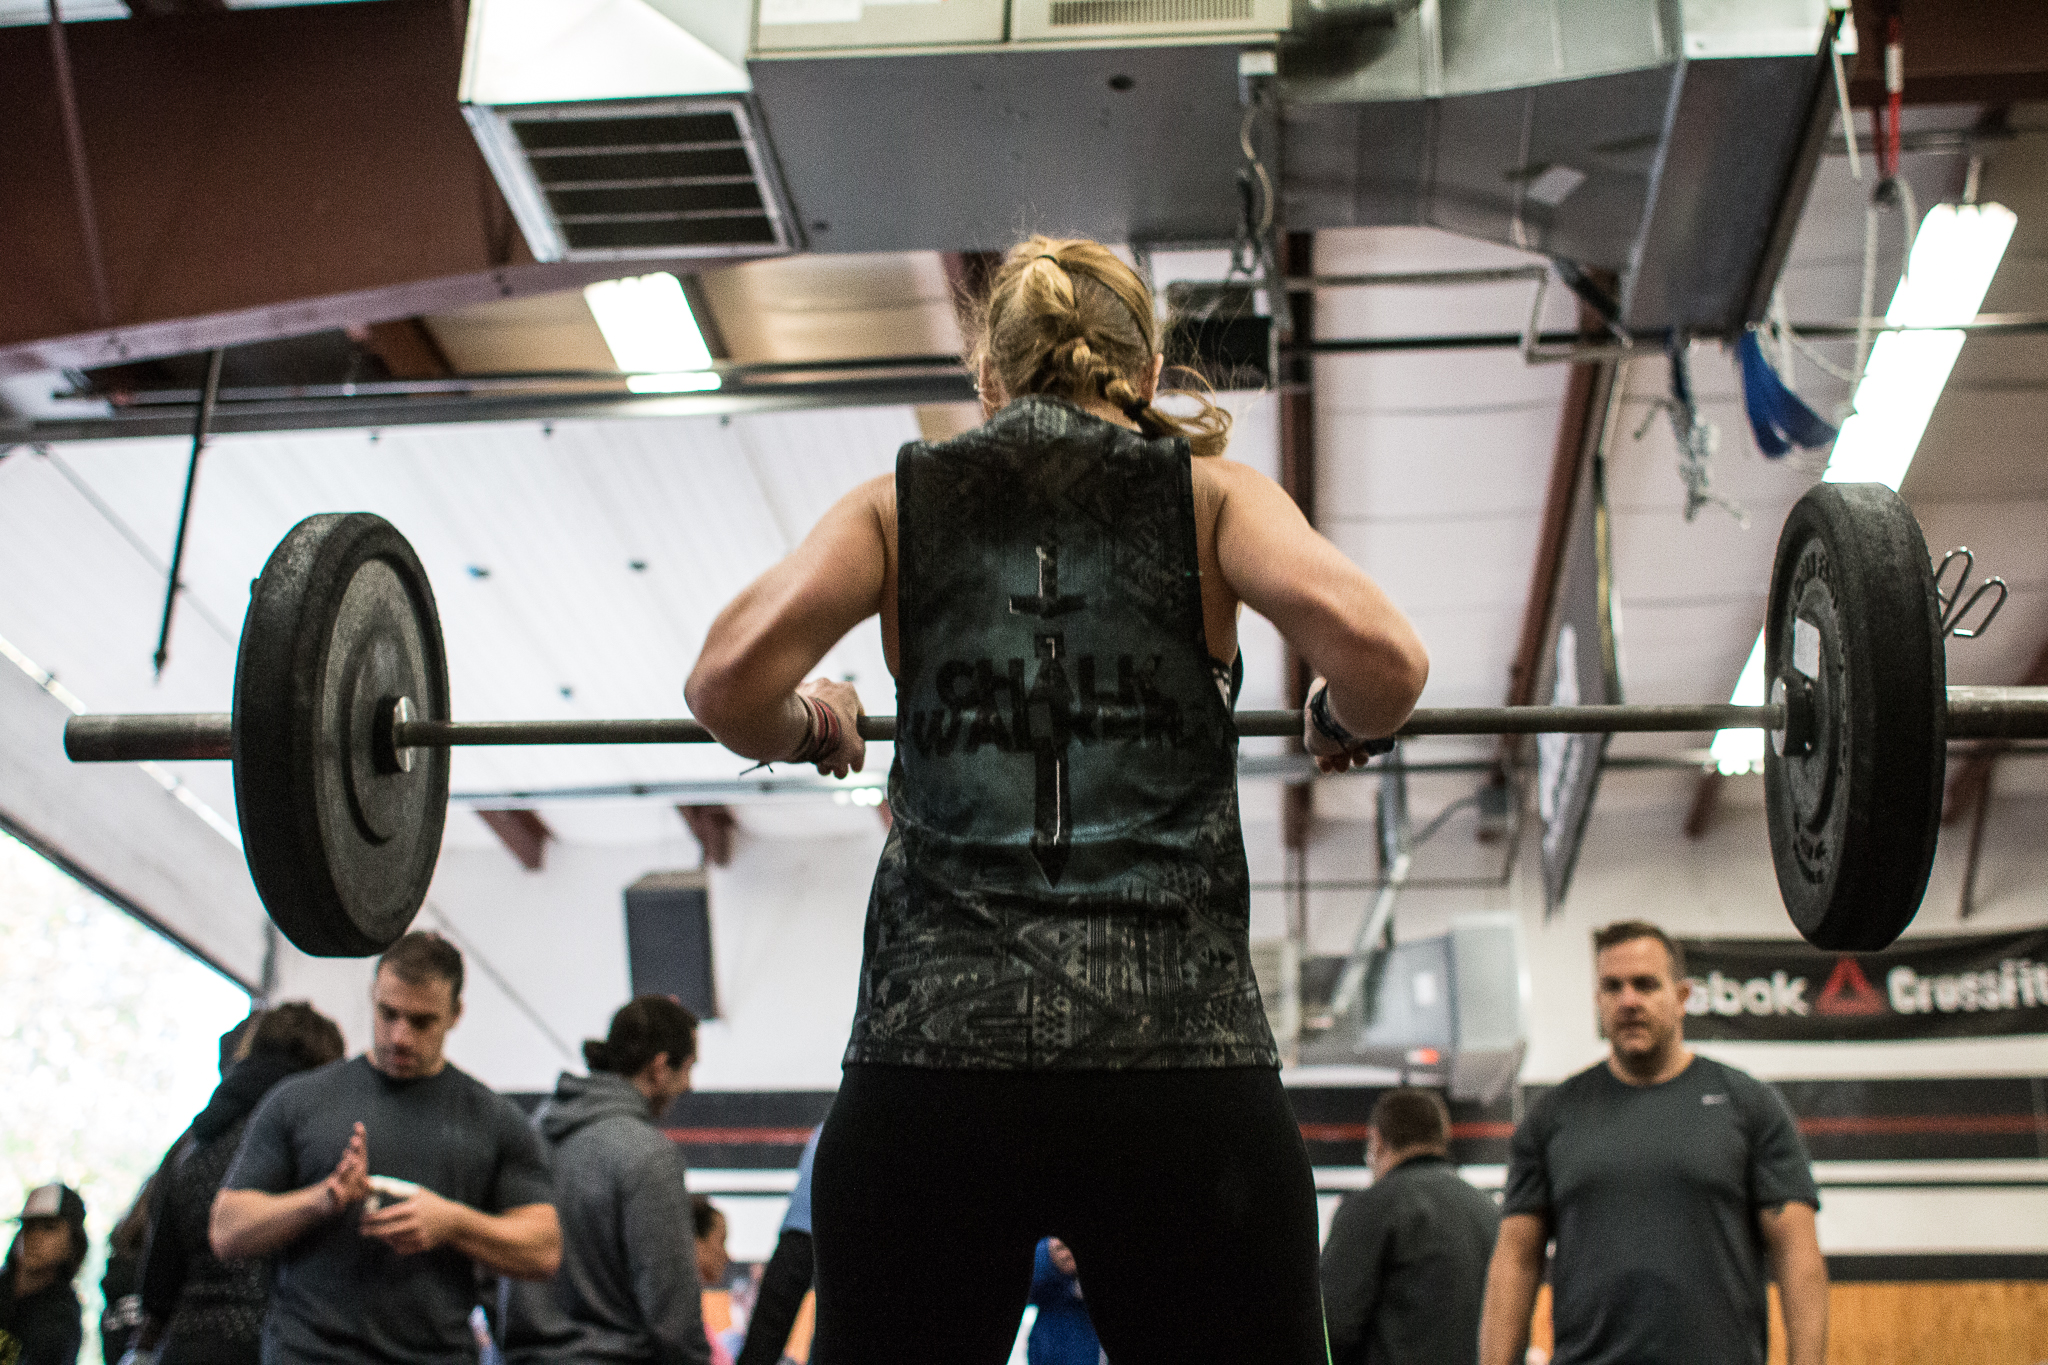 battle-for-bell-crossfit-strongtown-everyday-lifters (3 of 11).jpg